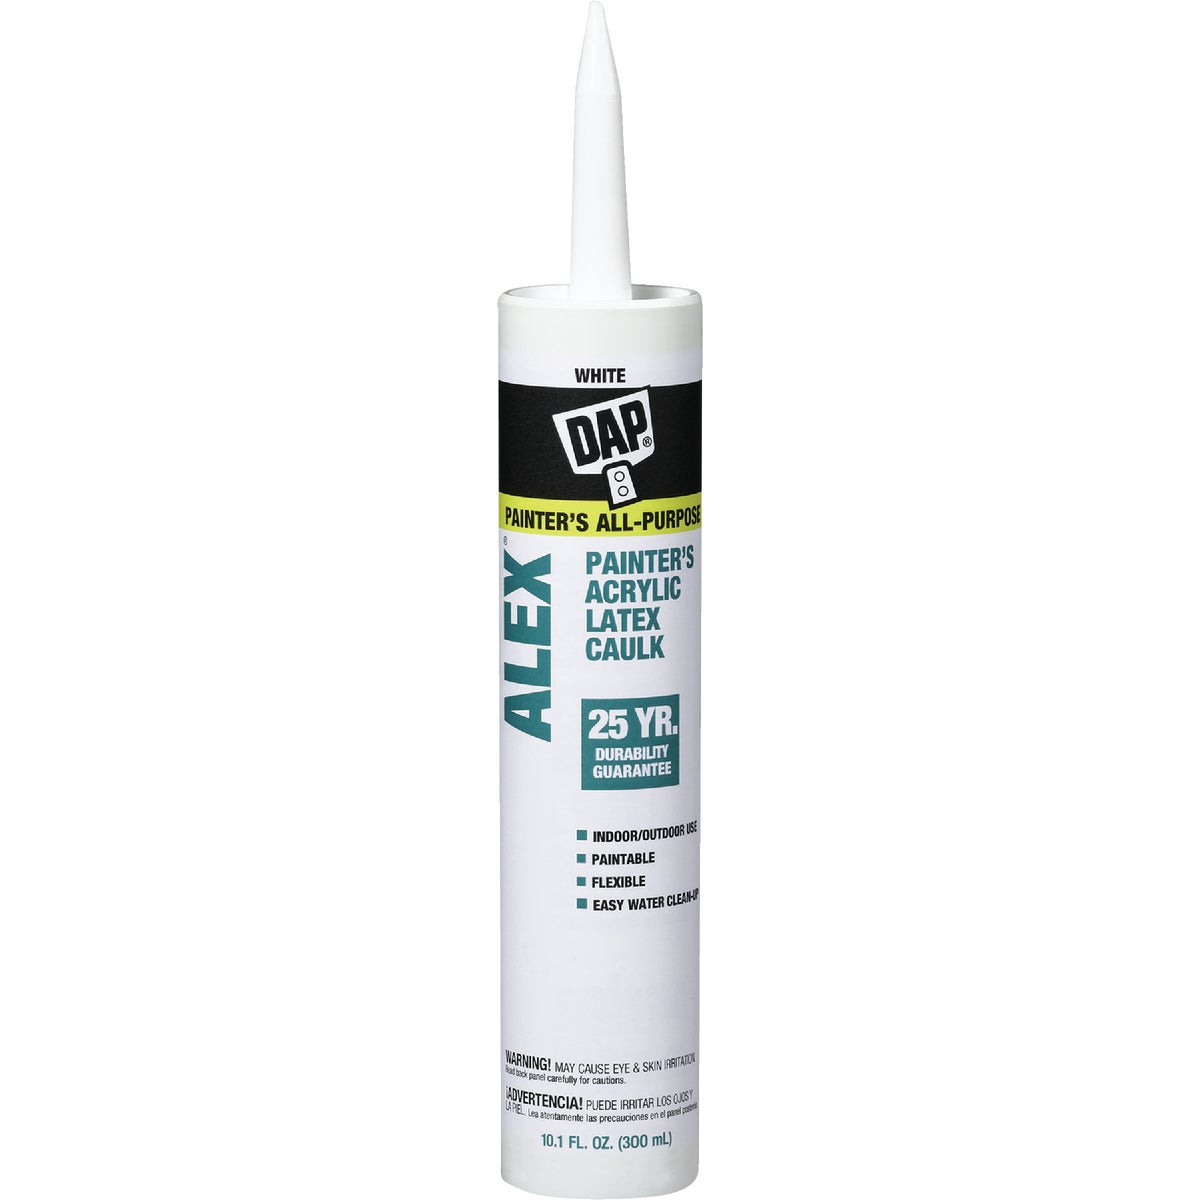 WHT ALEX PAINTER'S CAULK - 18670 by Dap Inc